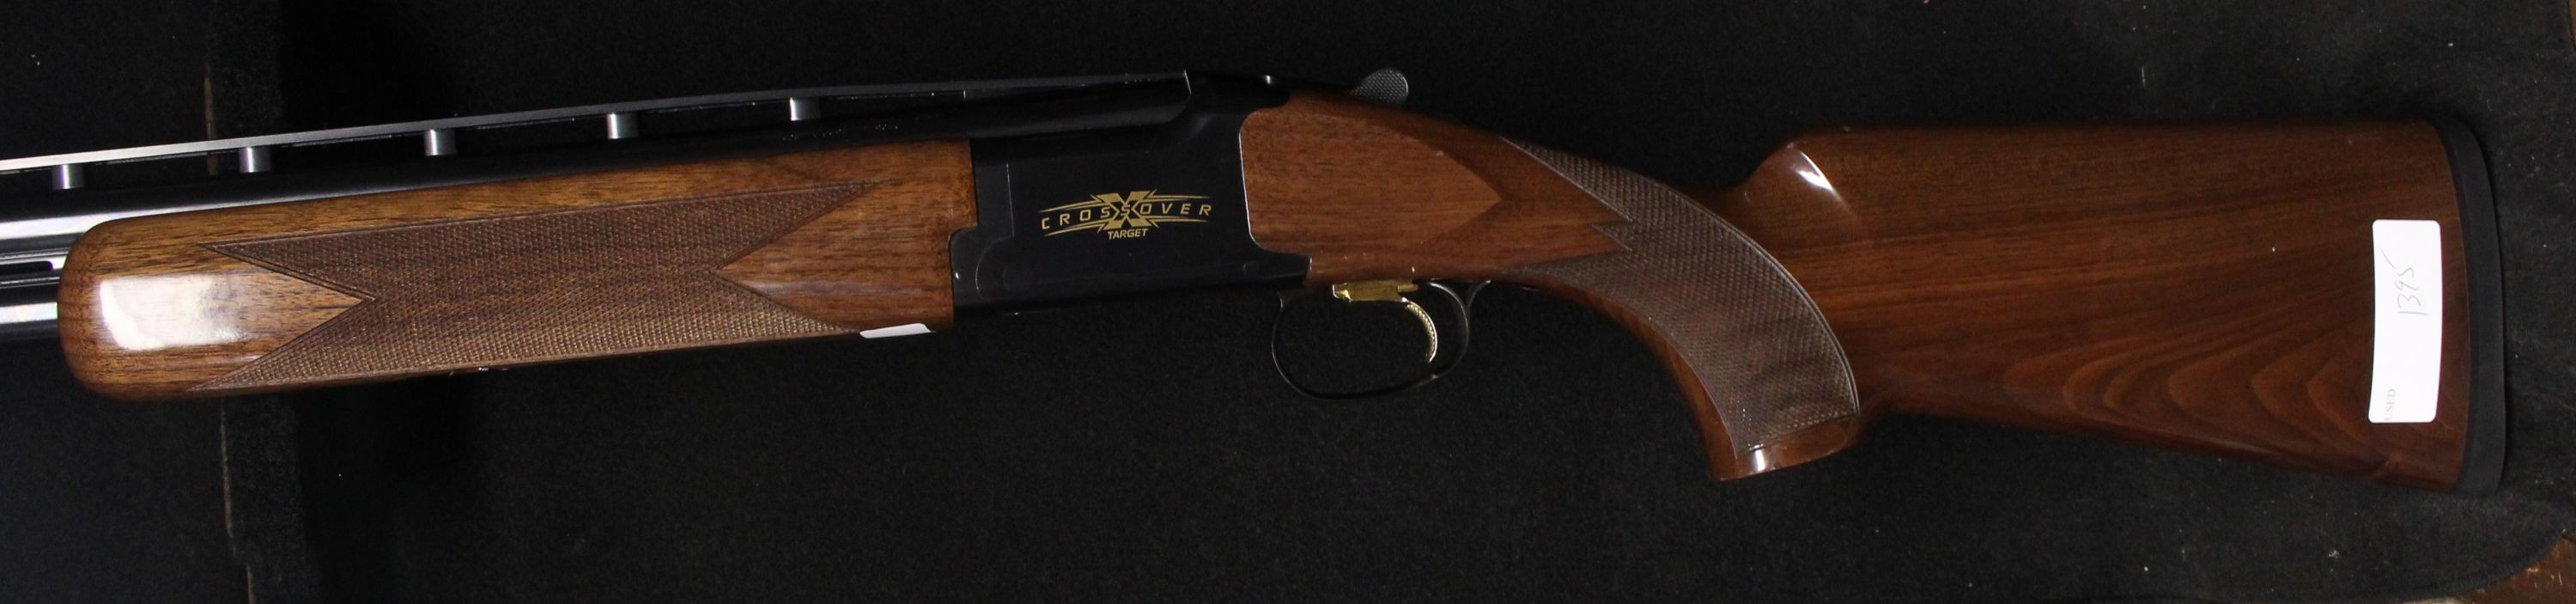 Browning Citori Crossover